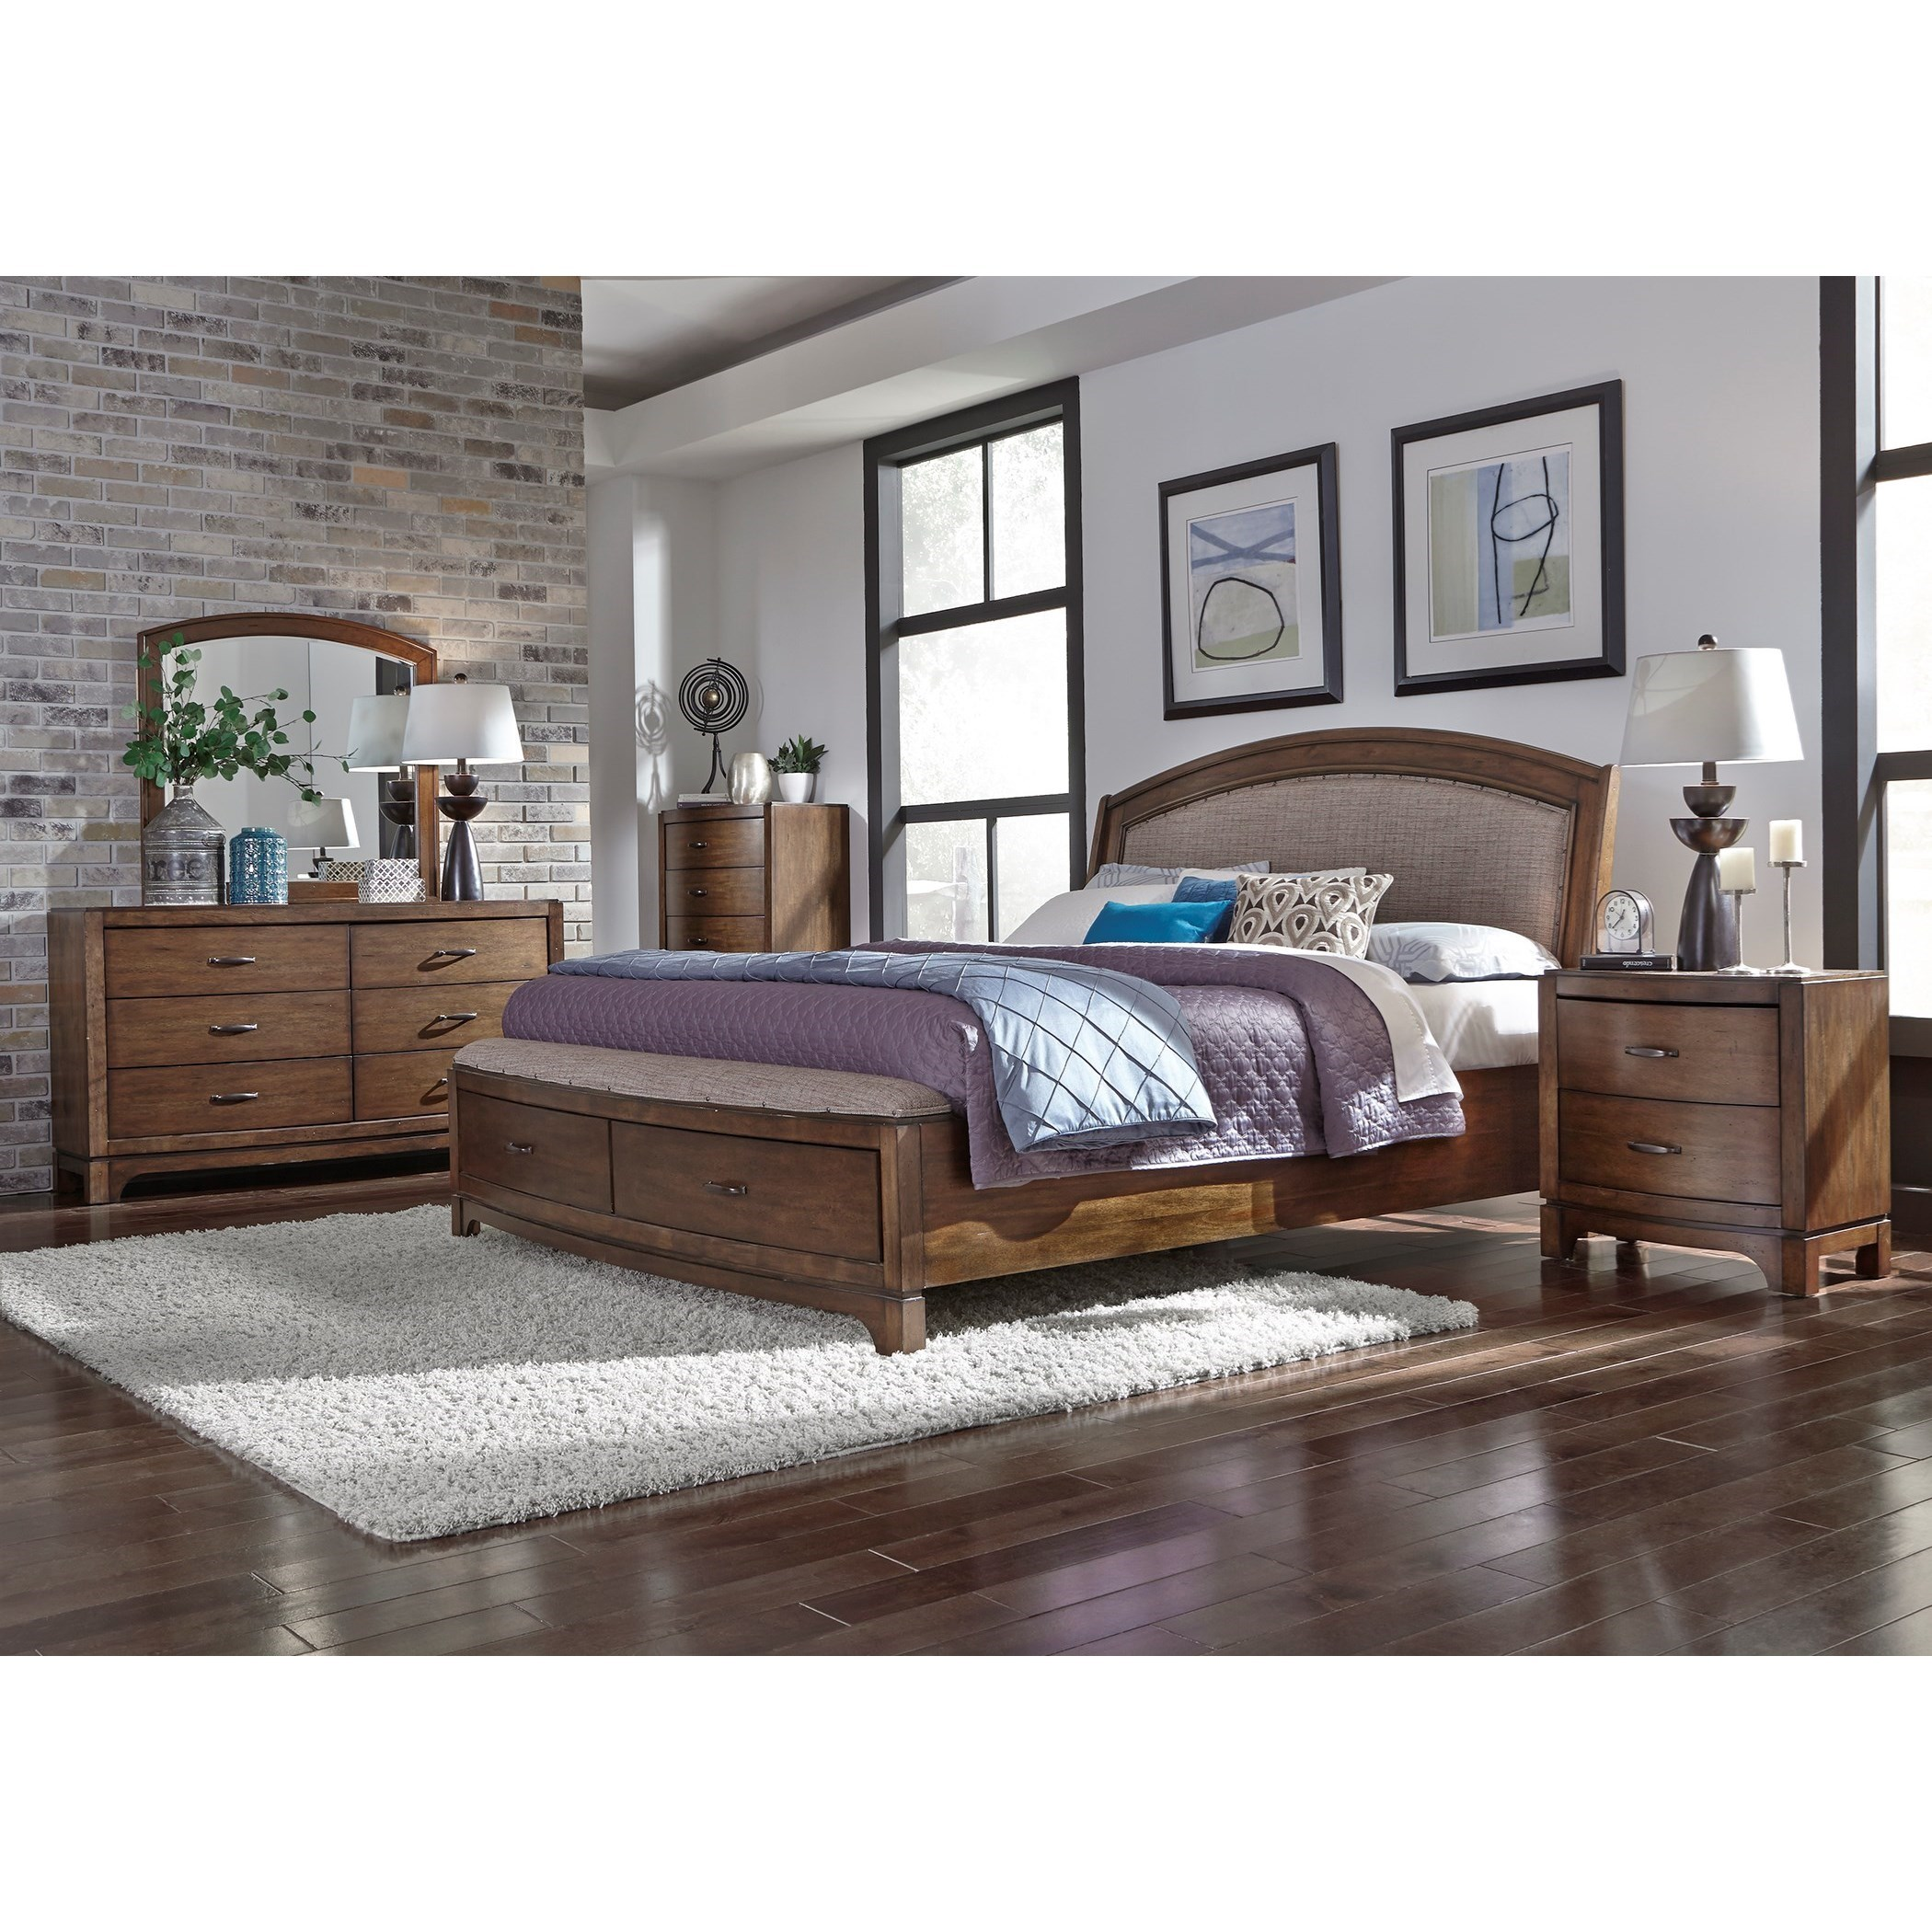 Avalon III King Bedroom Group by Liberty Furniture at Pilgrim Furniture City